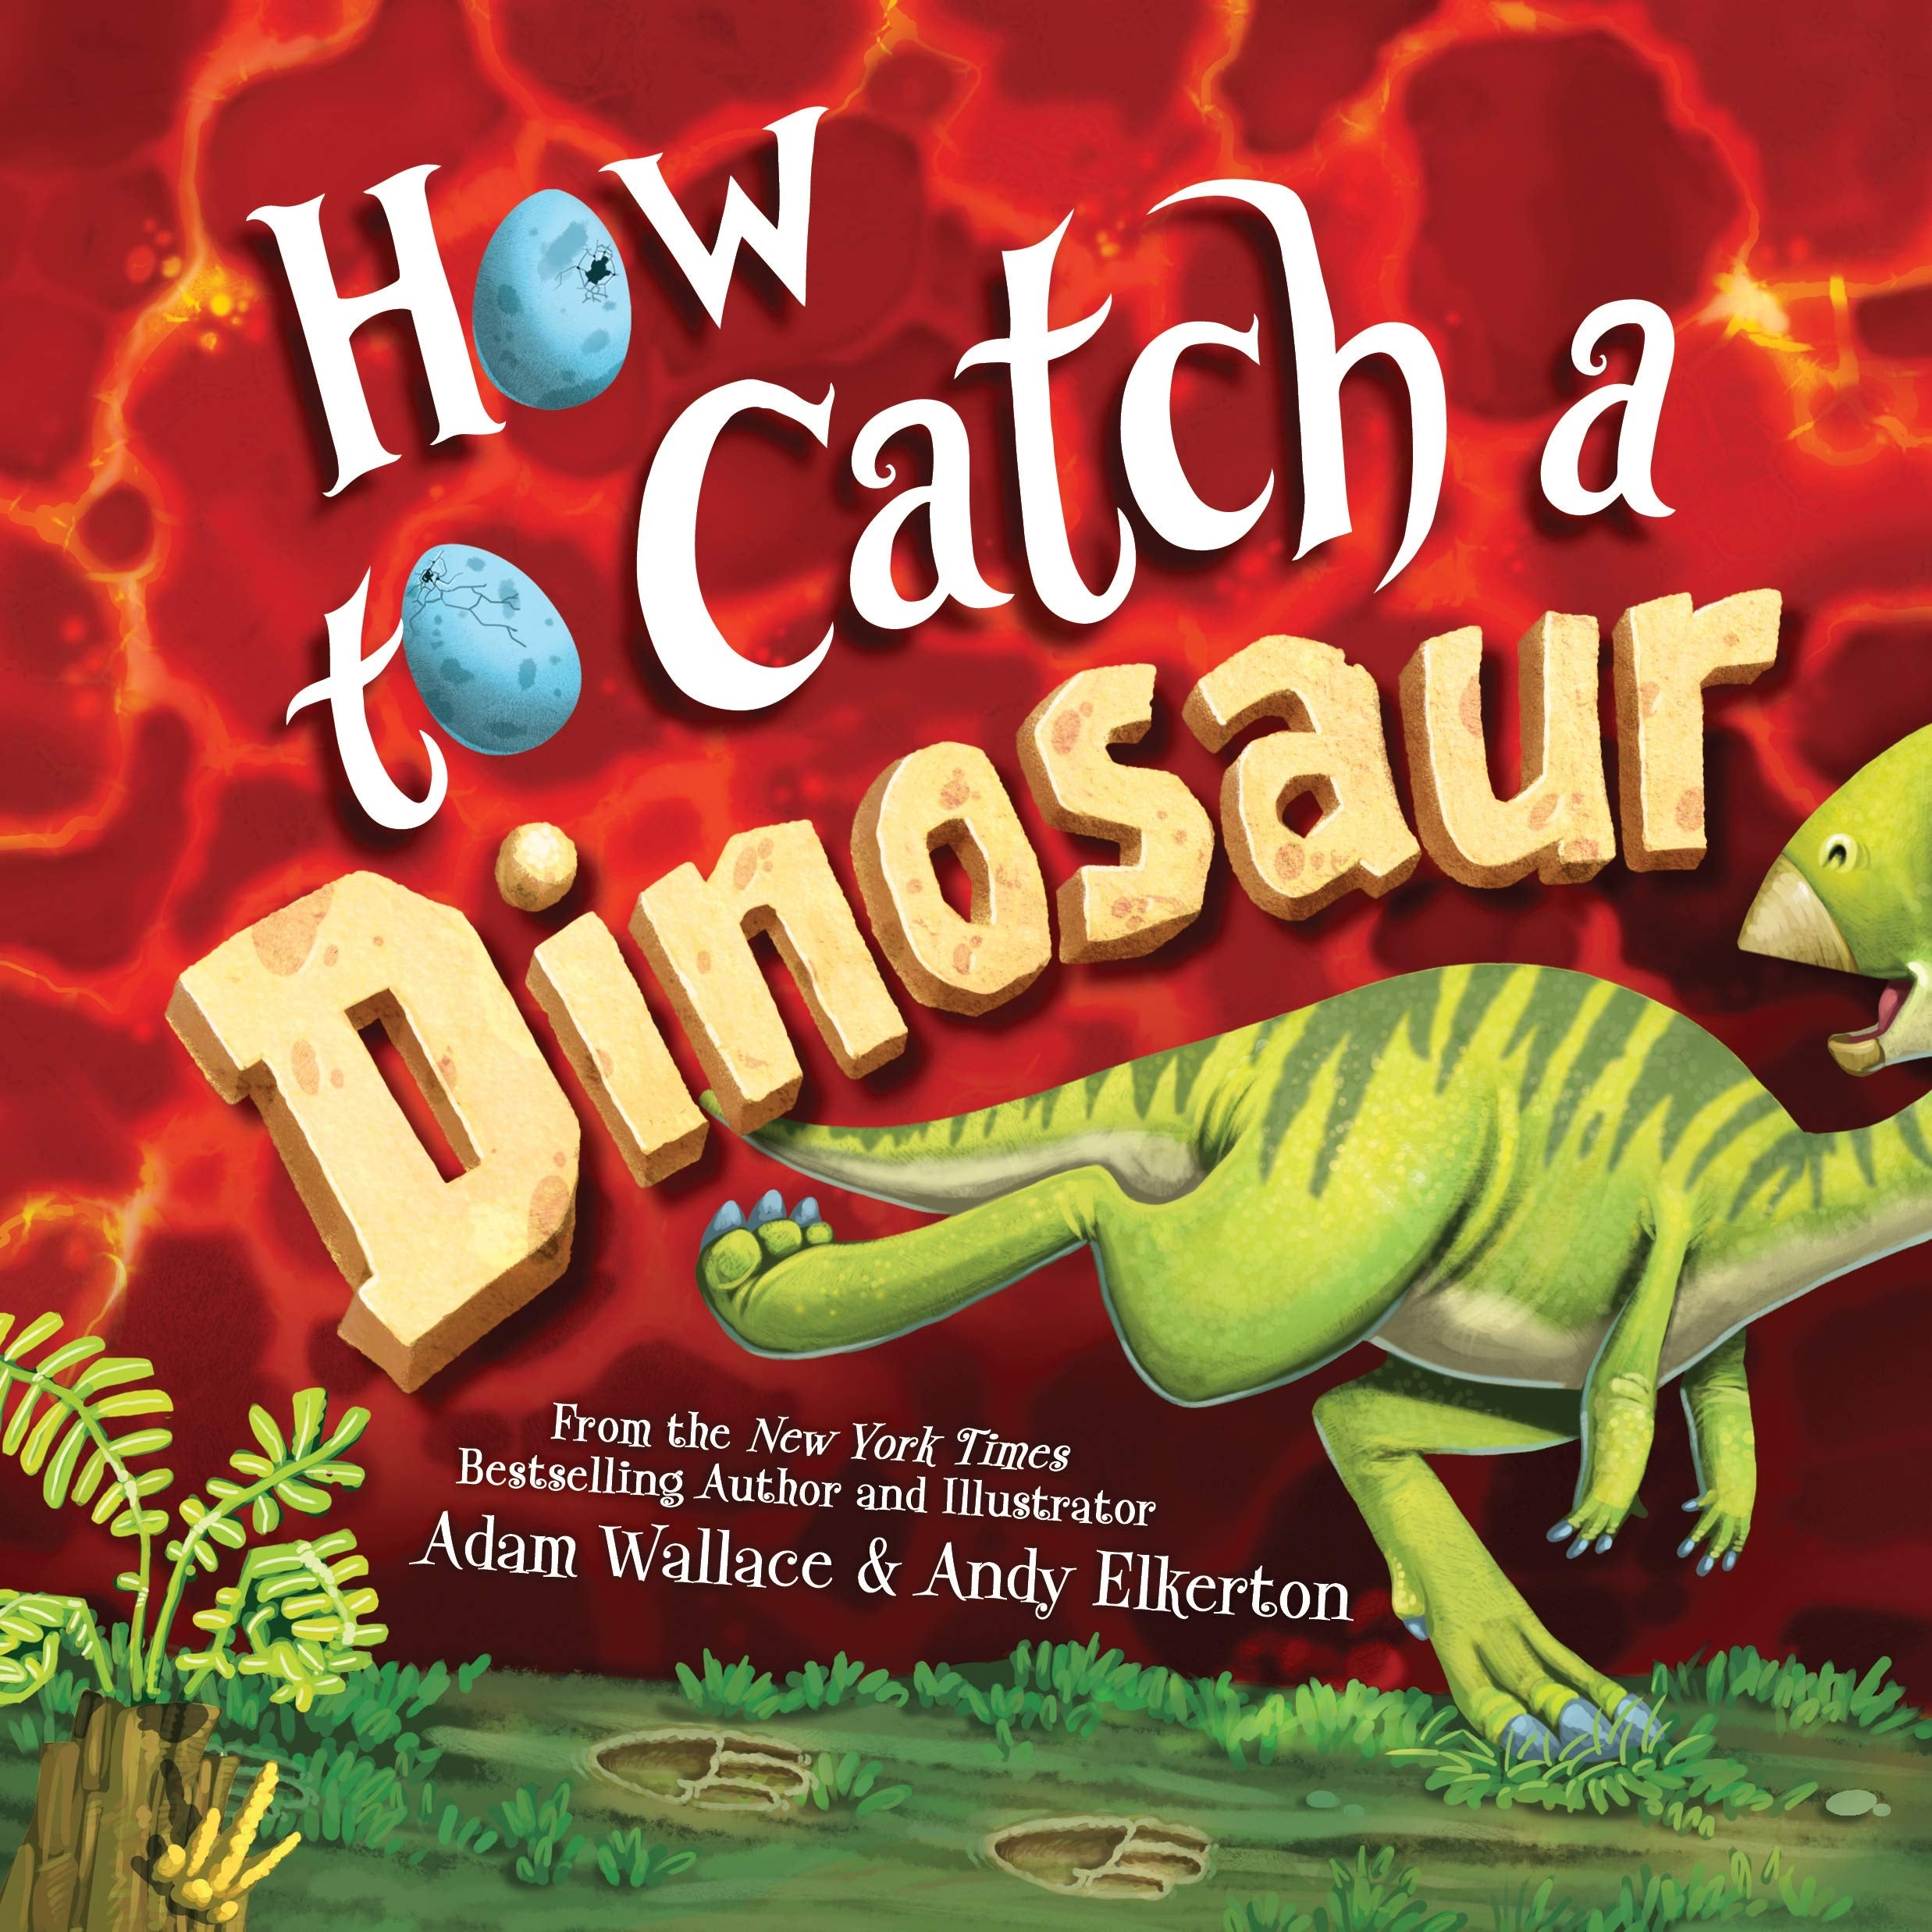 How to Catch a Dinosaur by Adam Wallace & Andy Elkerton